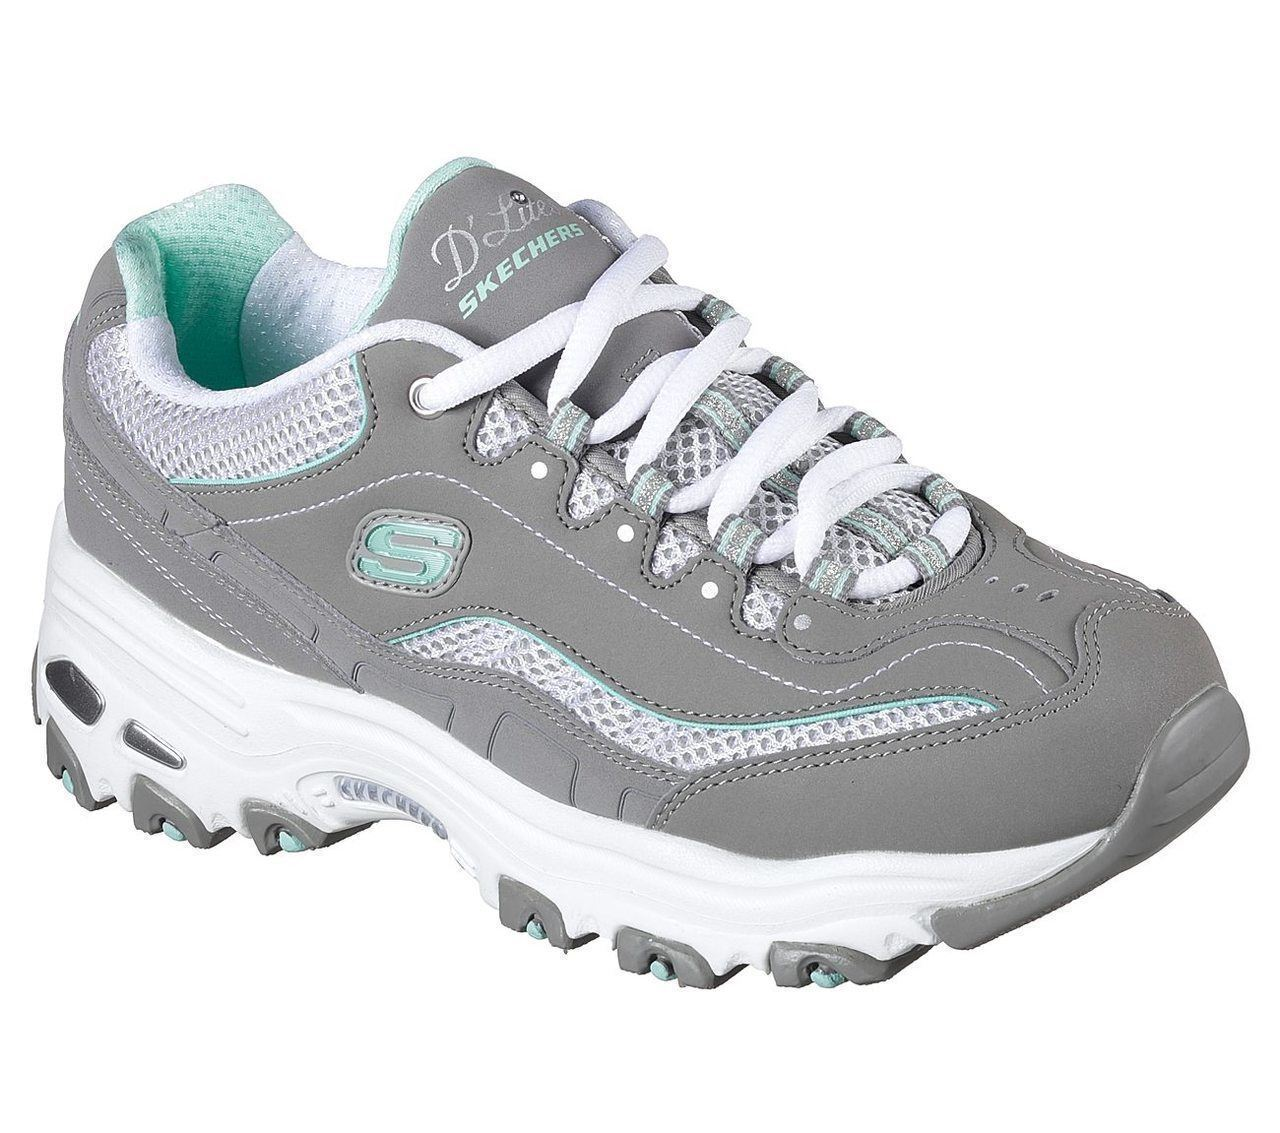 best website bedbe 9fa38 femmes SKECHERS MEMORY FOAM AIR COOLED LACE UP GREY blanc DLITES SNEAKERS  11860